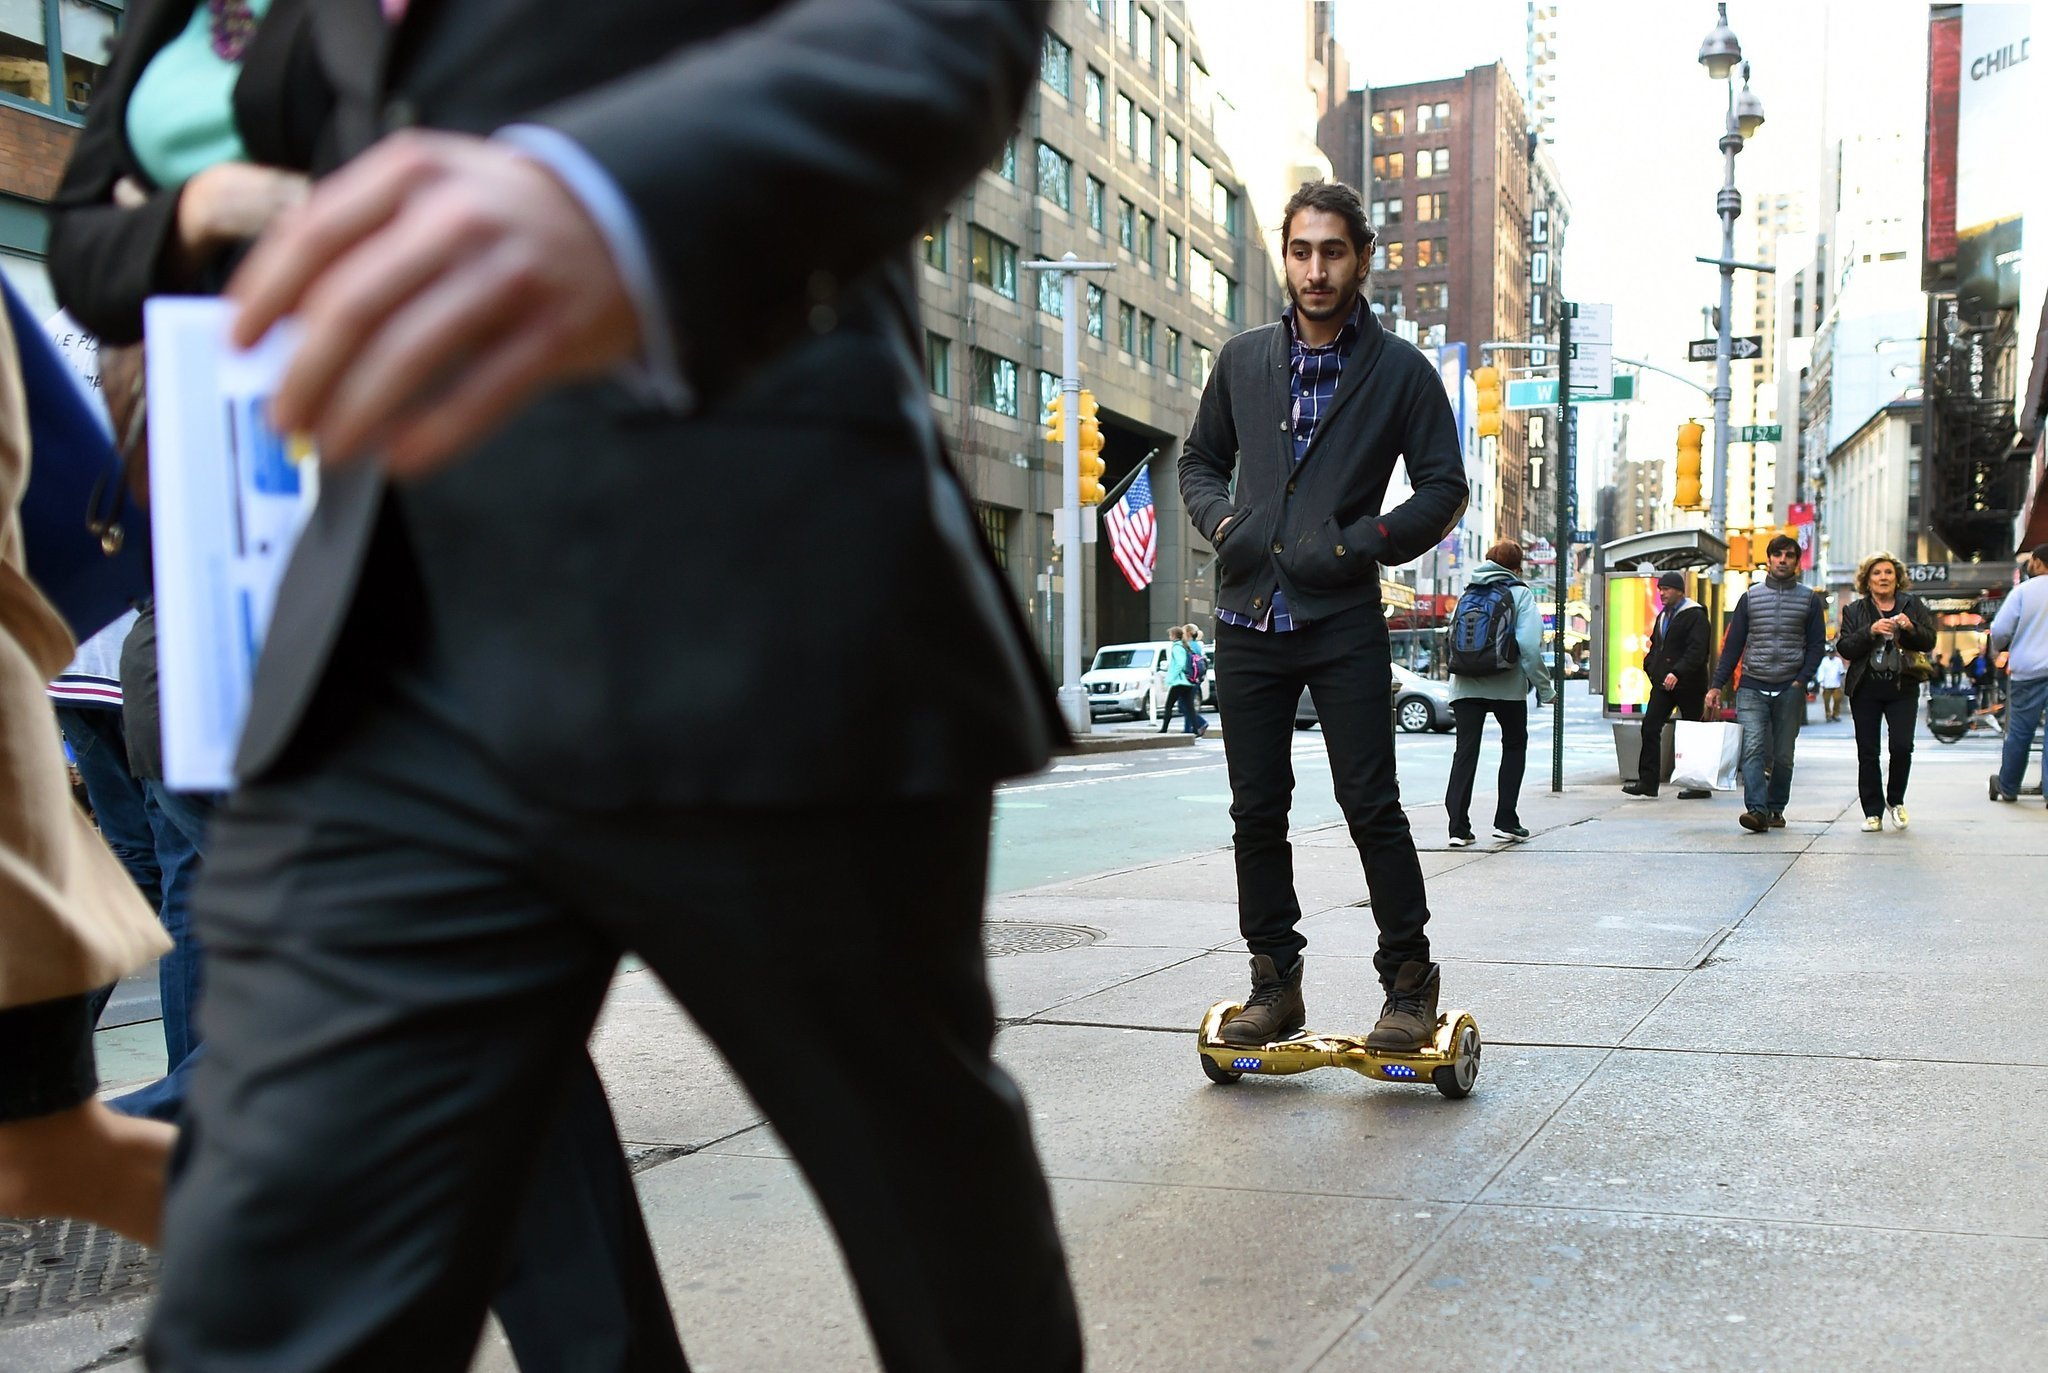 Hoverboard maker under fire for counterfeit certification marks